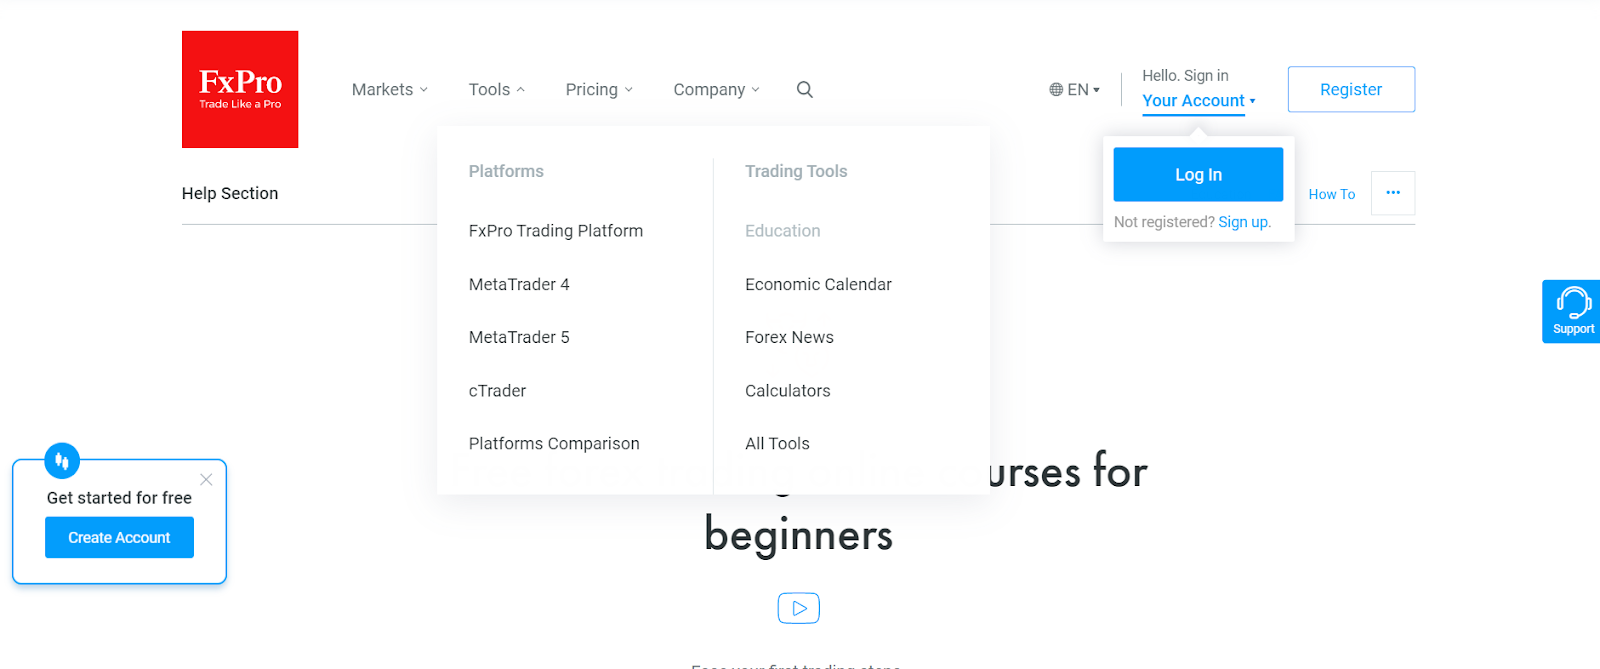 Types of platforms offered demo trading accounts